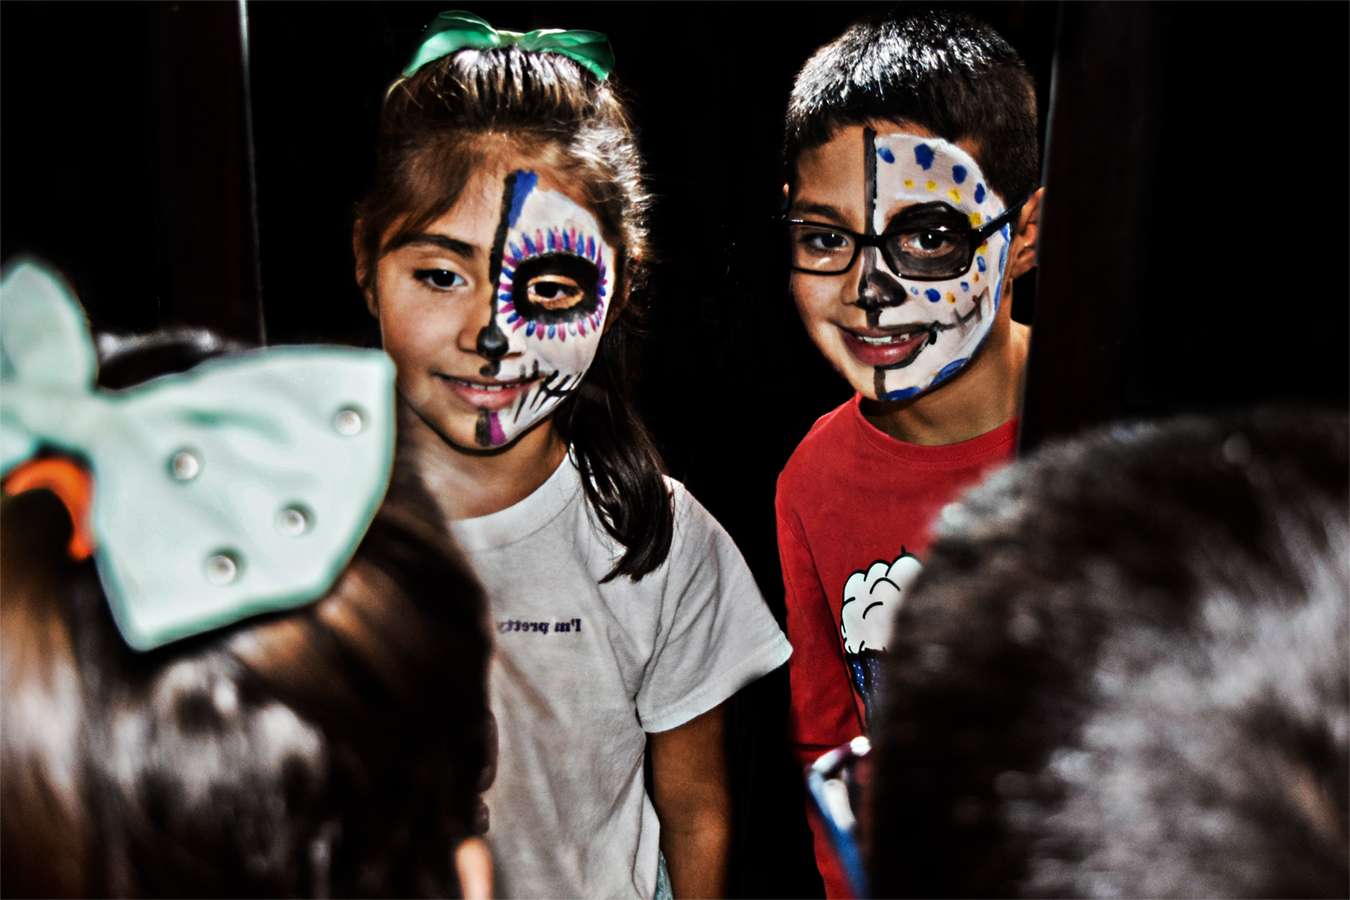 Victoria_Meng_Project3_Mirror_Kids_Looking_Face_Paint_Day_of_the_Dead_Celebration_Museum_Reflections